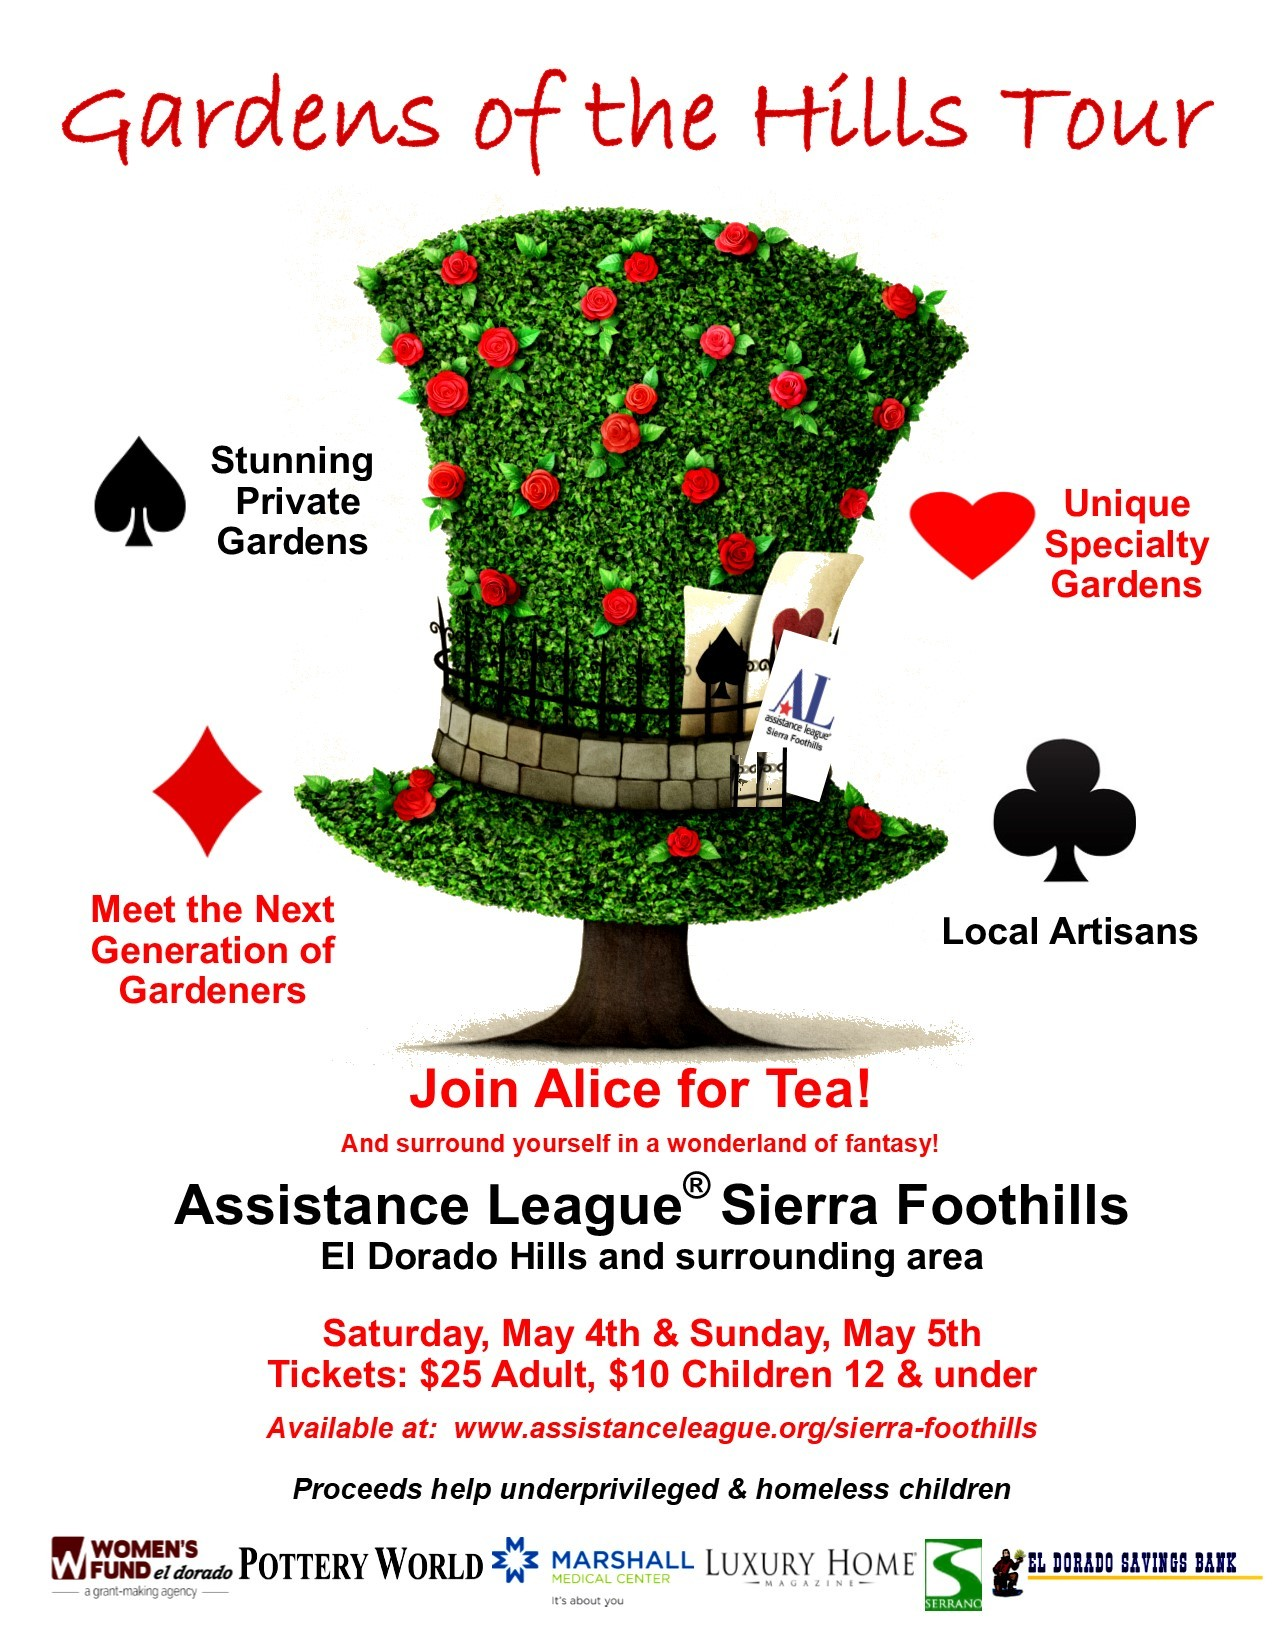 10th Annual Garden Tour of the Sierra Foothills Assistance League! In El Dorado County!